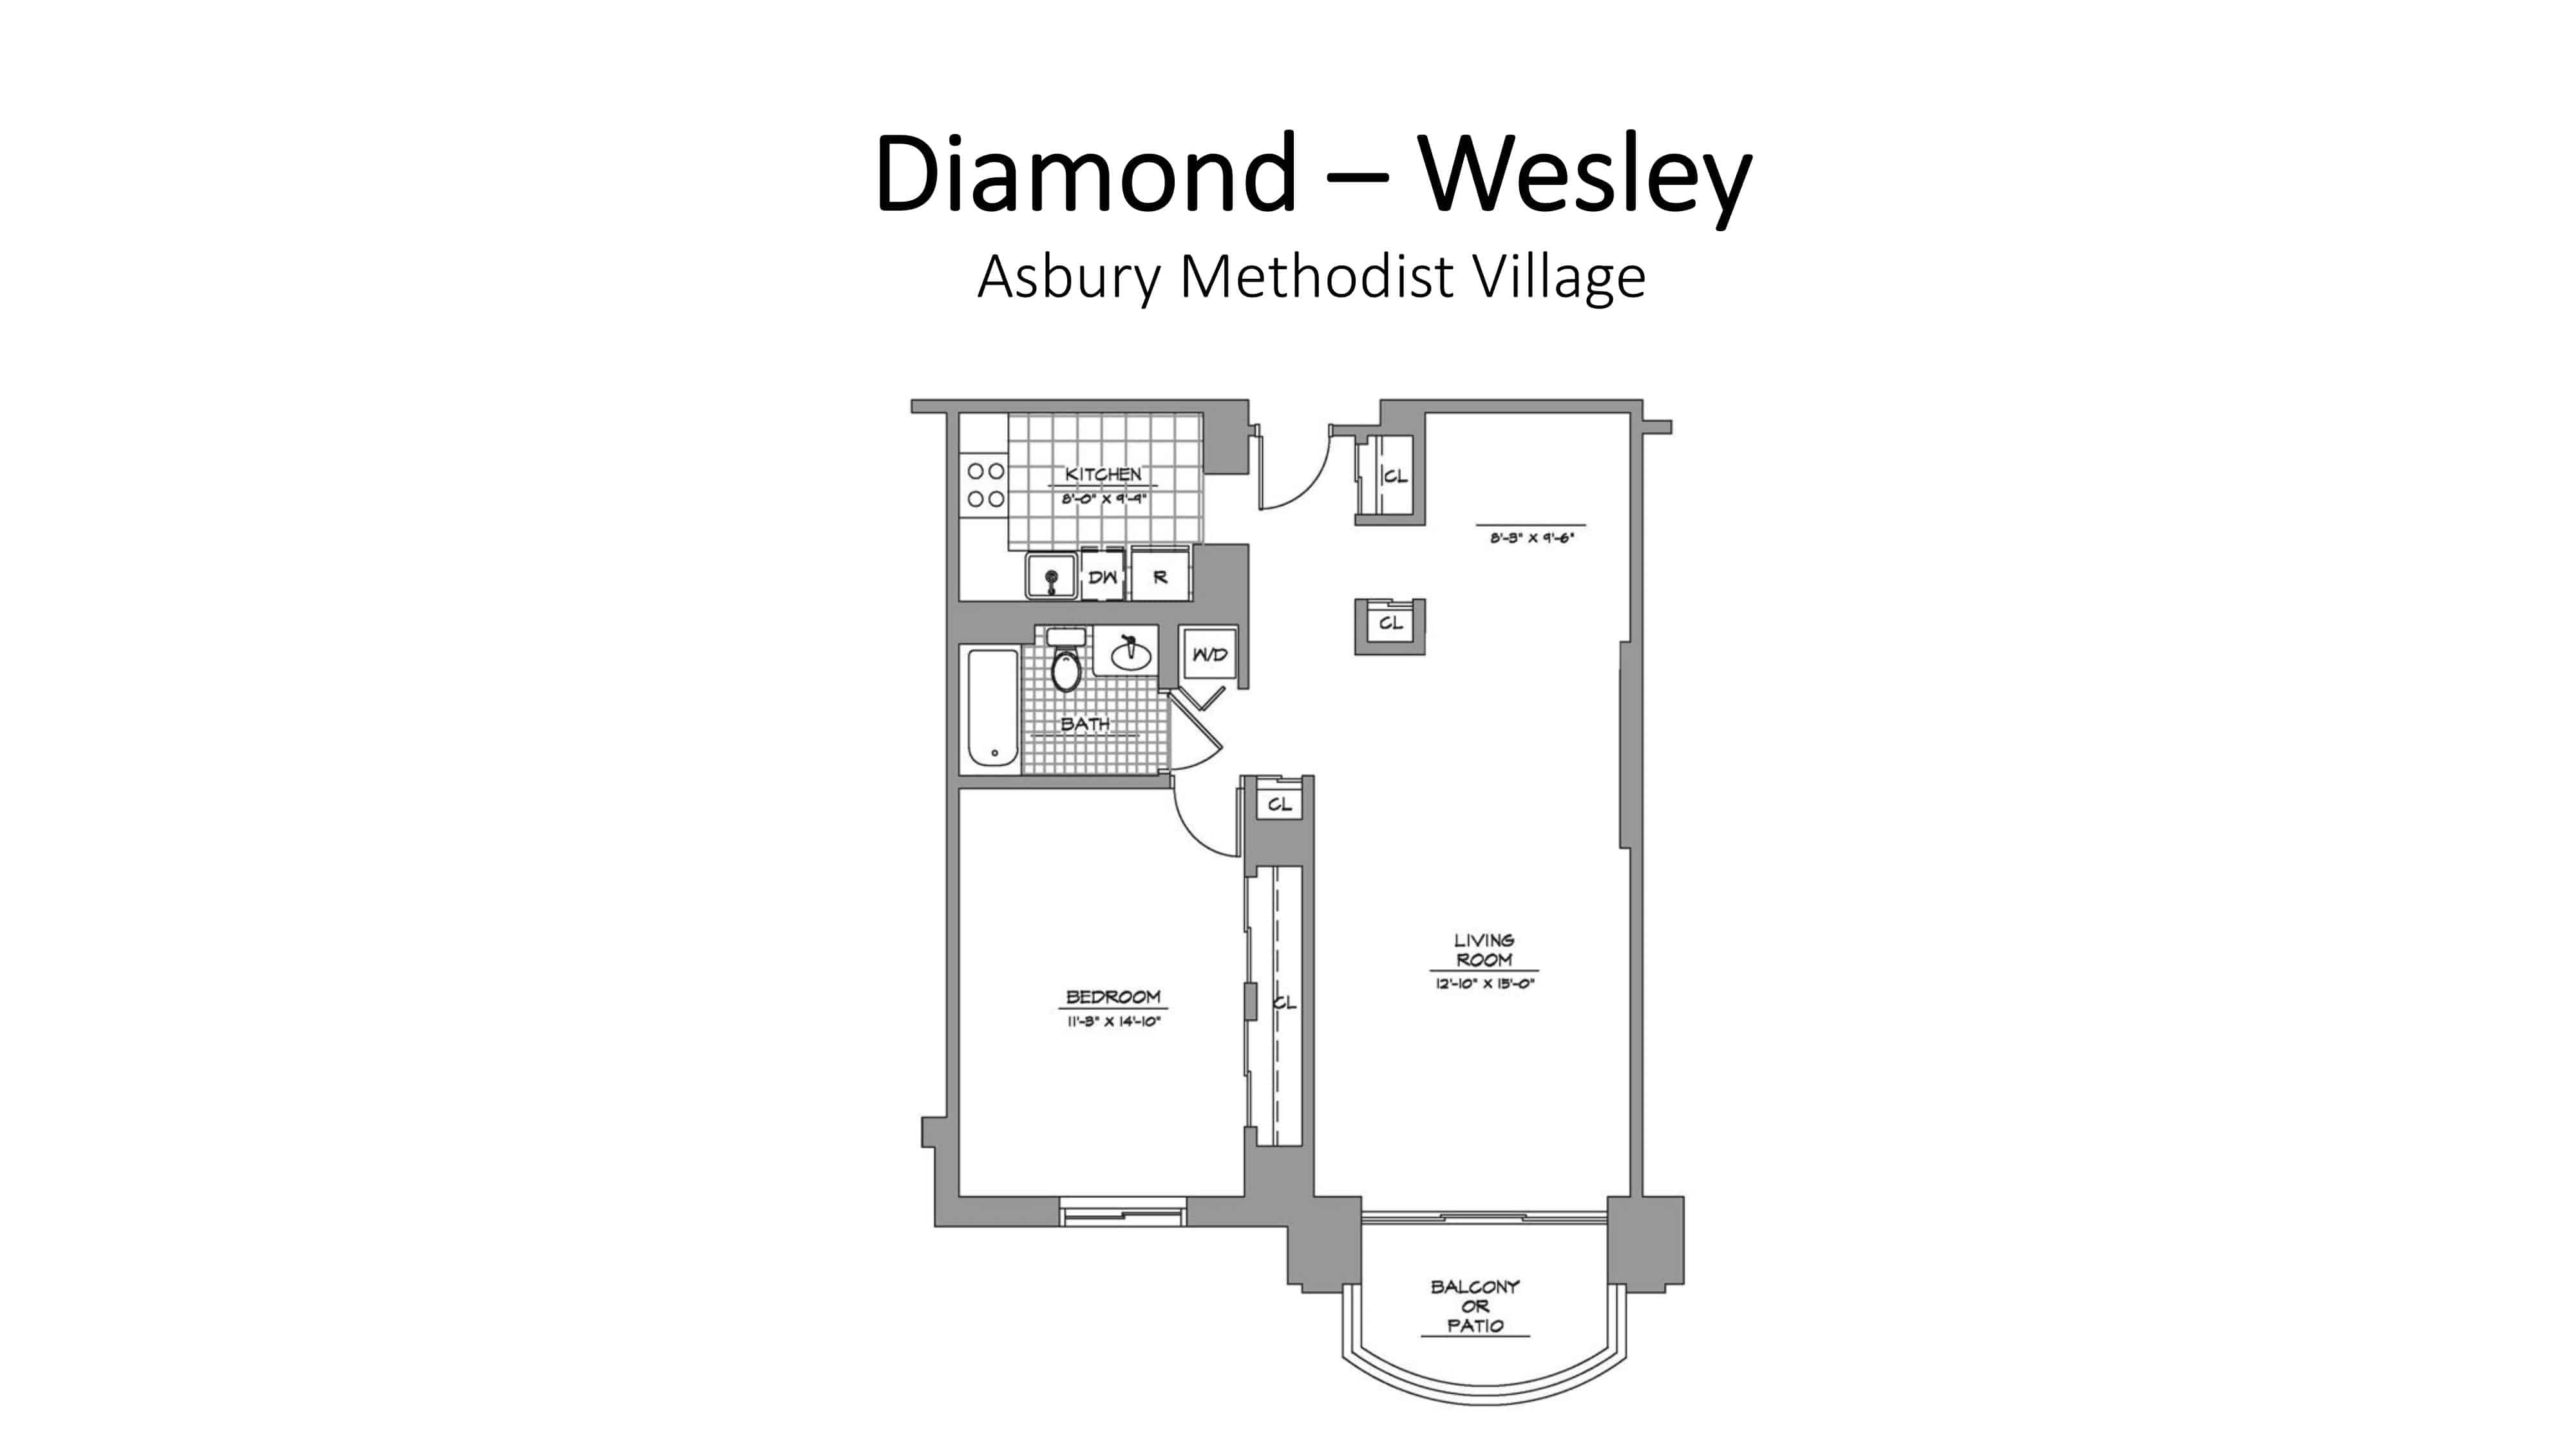 Asbury Methodist Village Diamond - Wesley